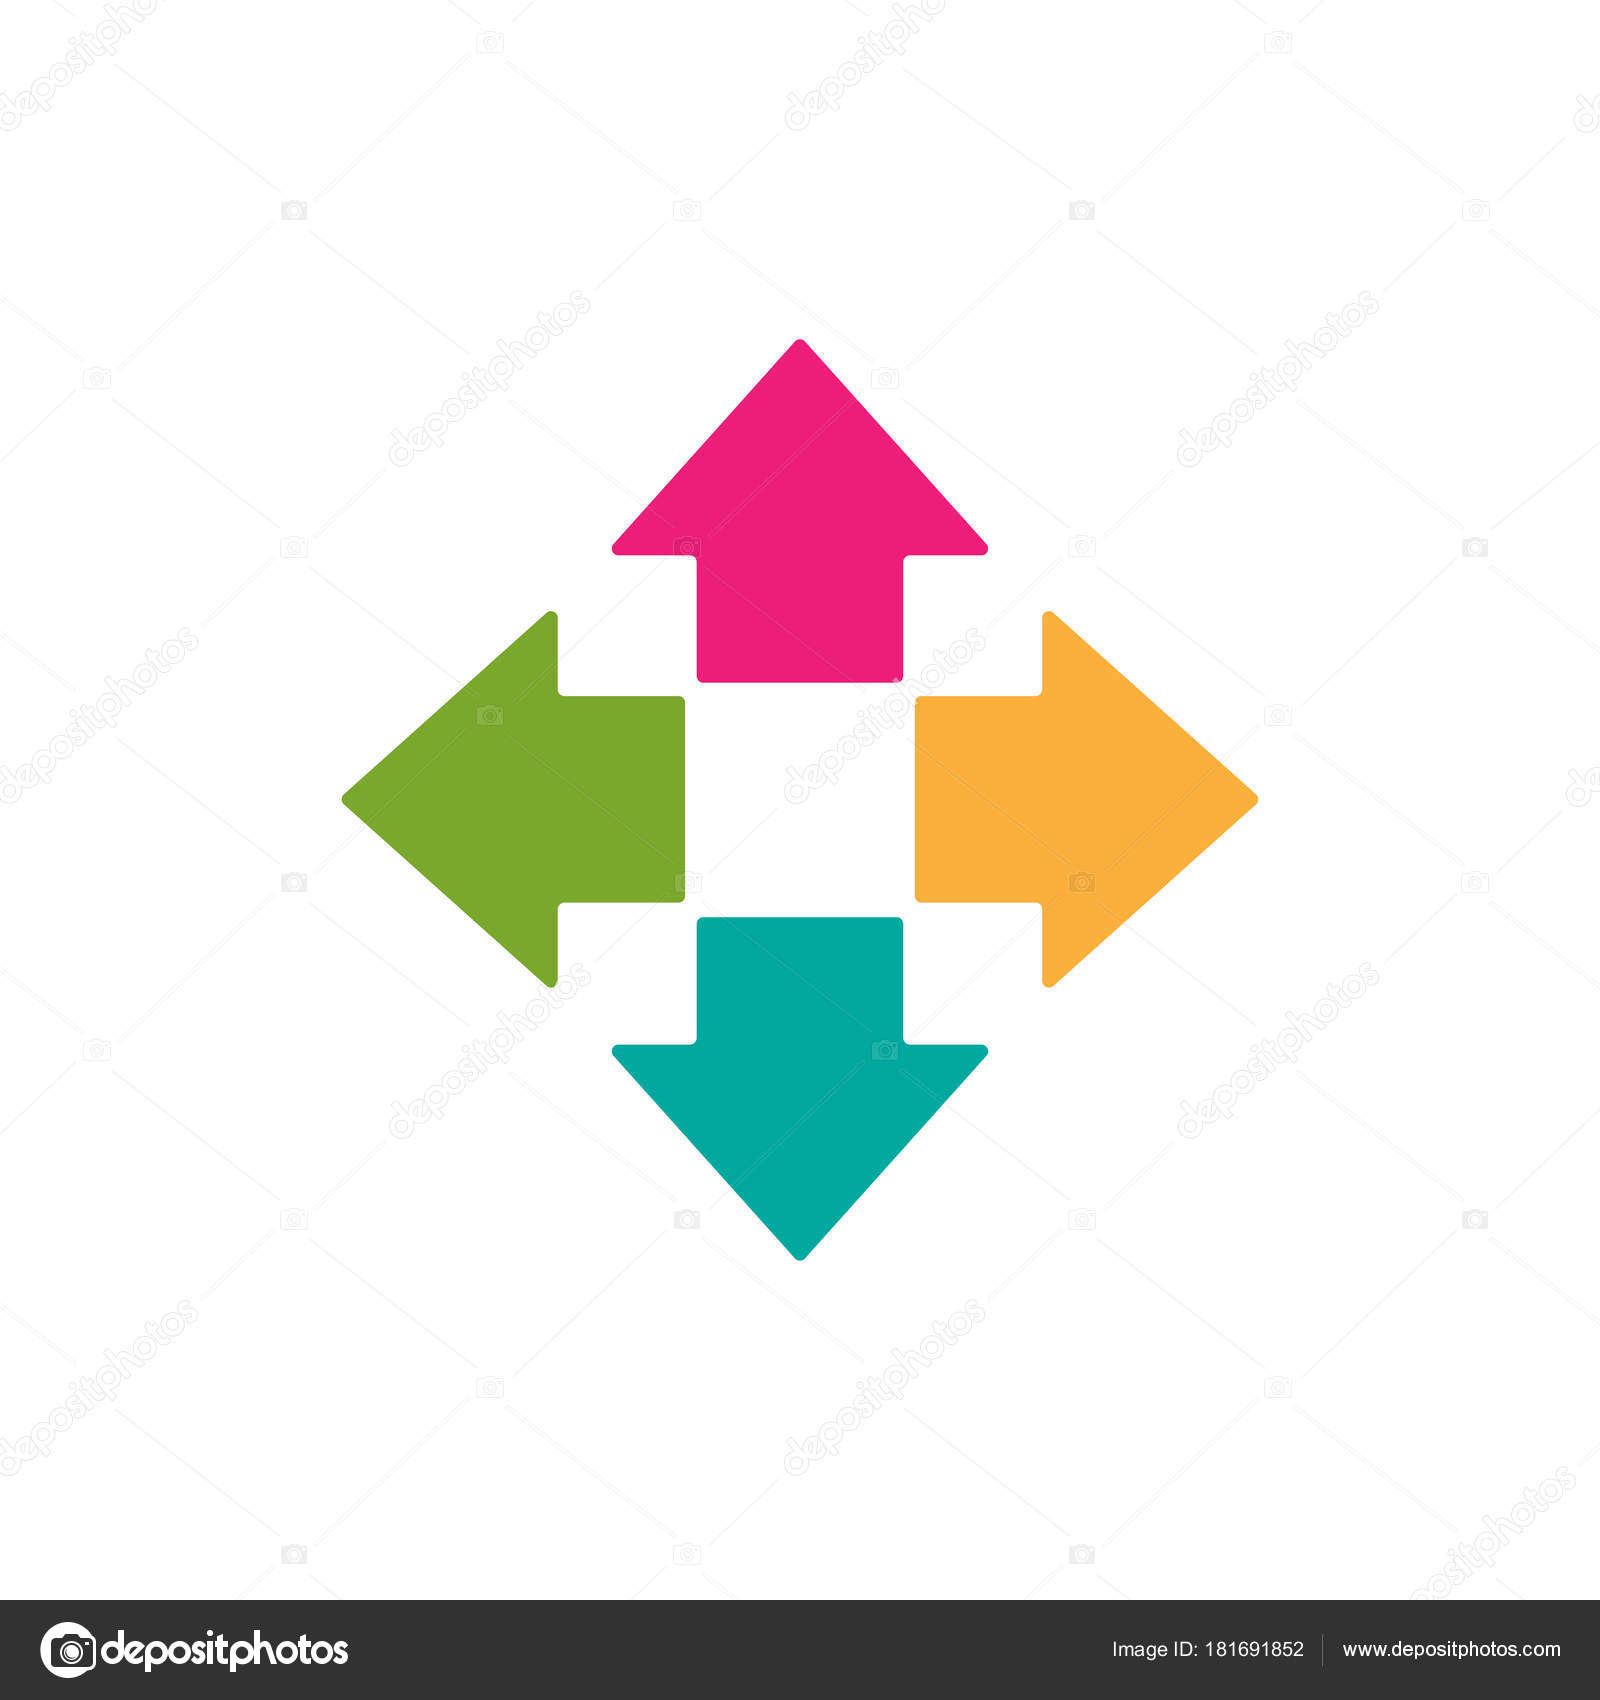 Four colorful arrows point out from the center  Expand